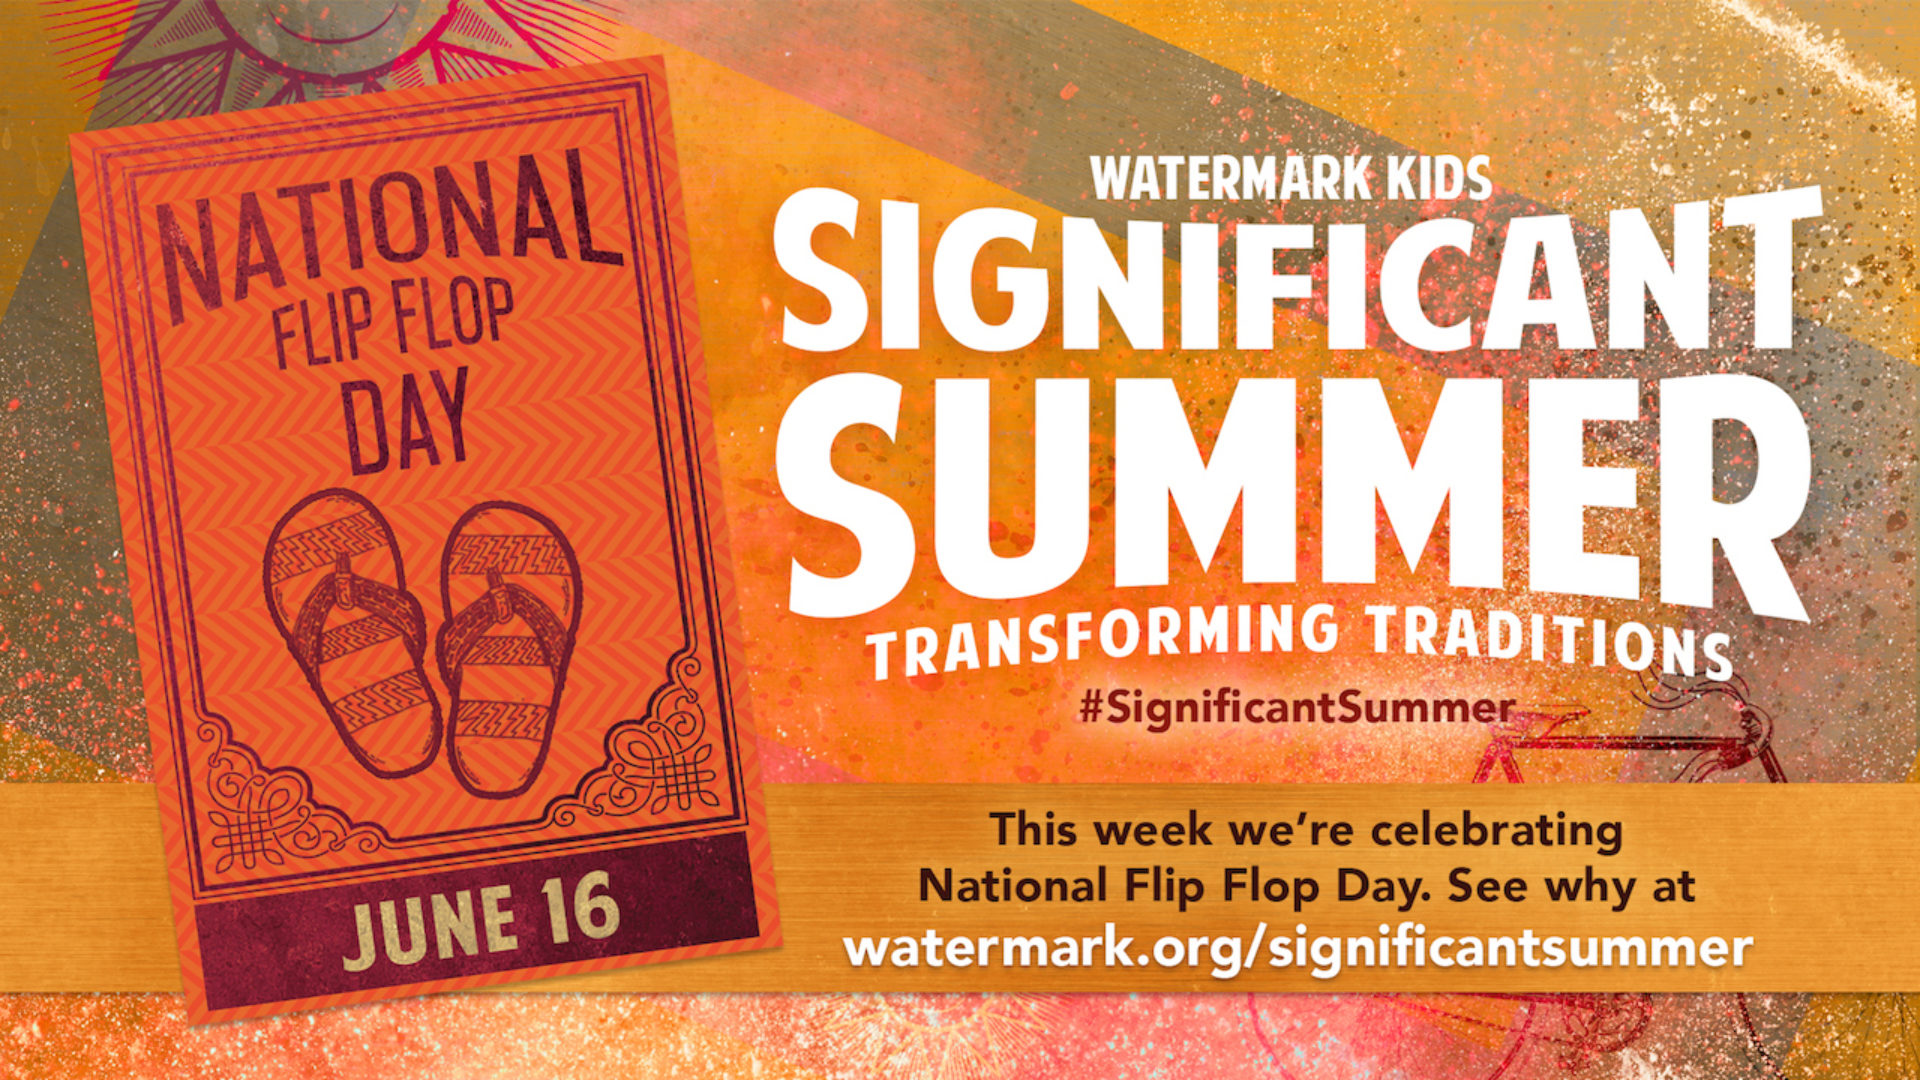 Significant Summer Week 2: National Flip Flop Day Hero Image